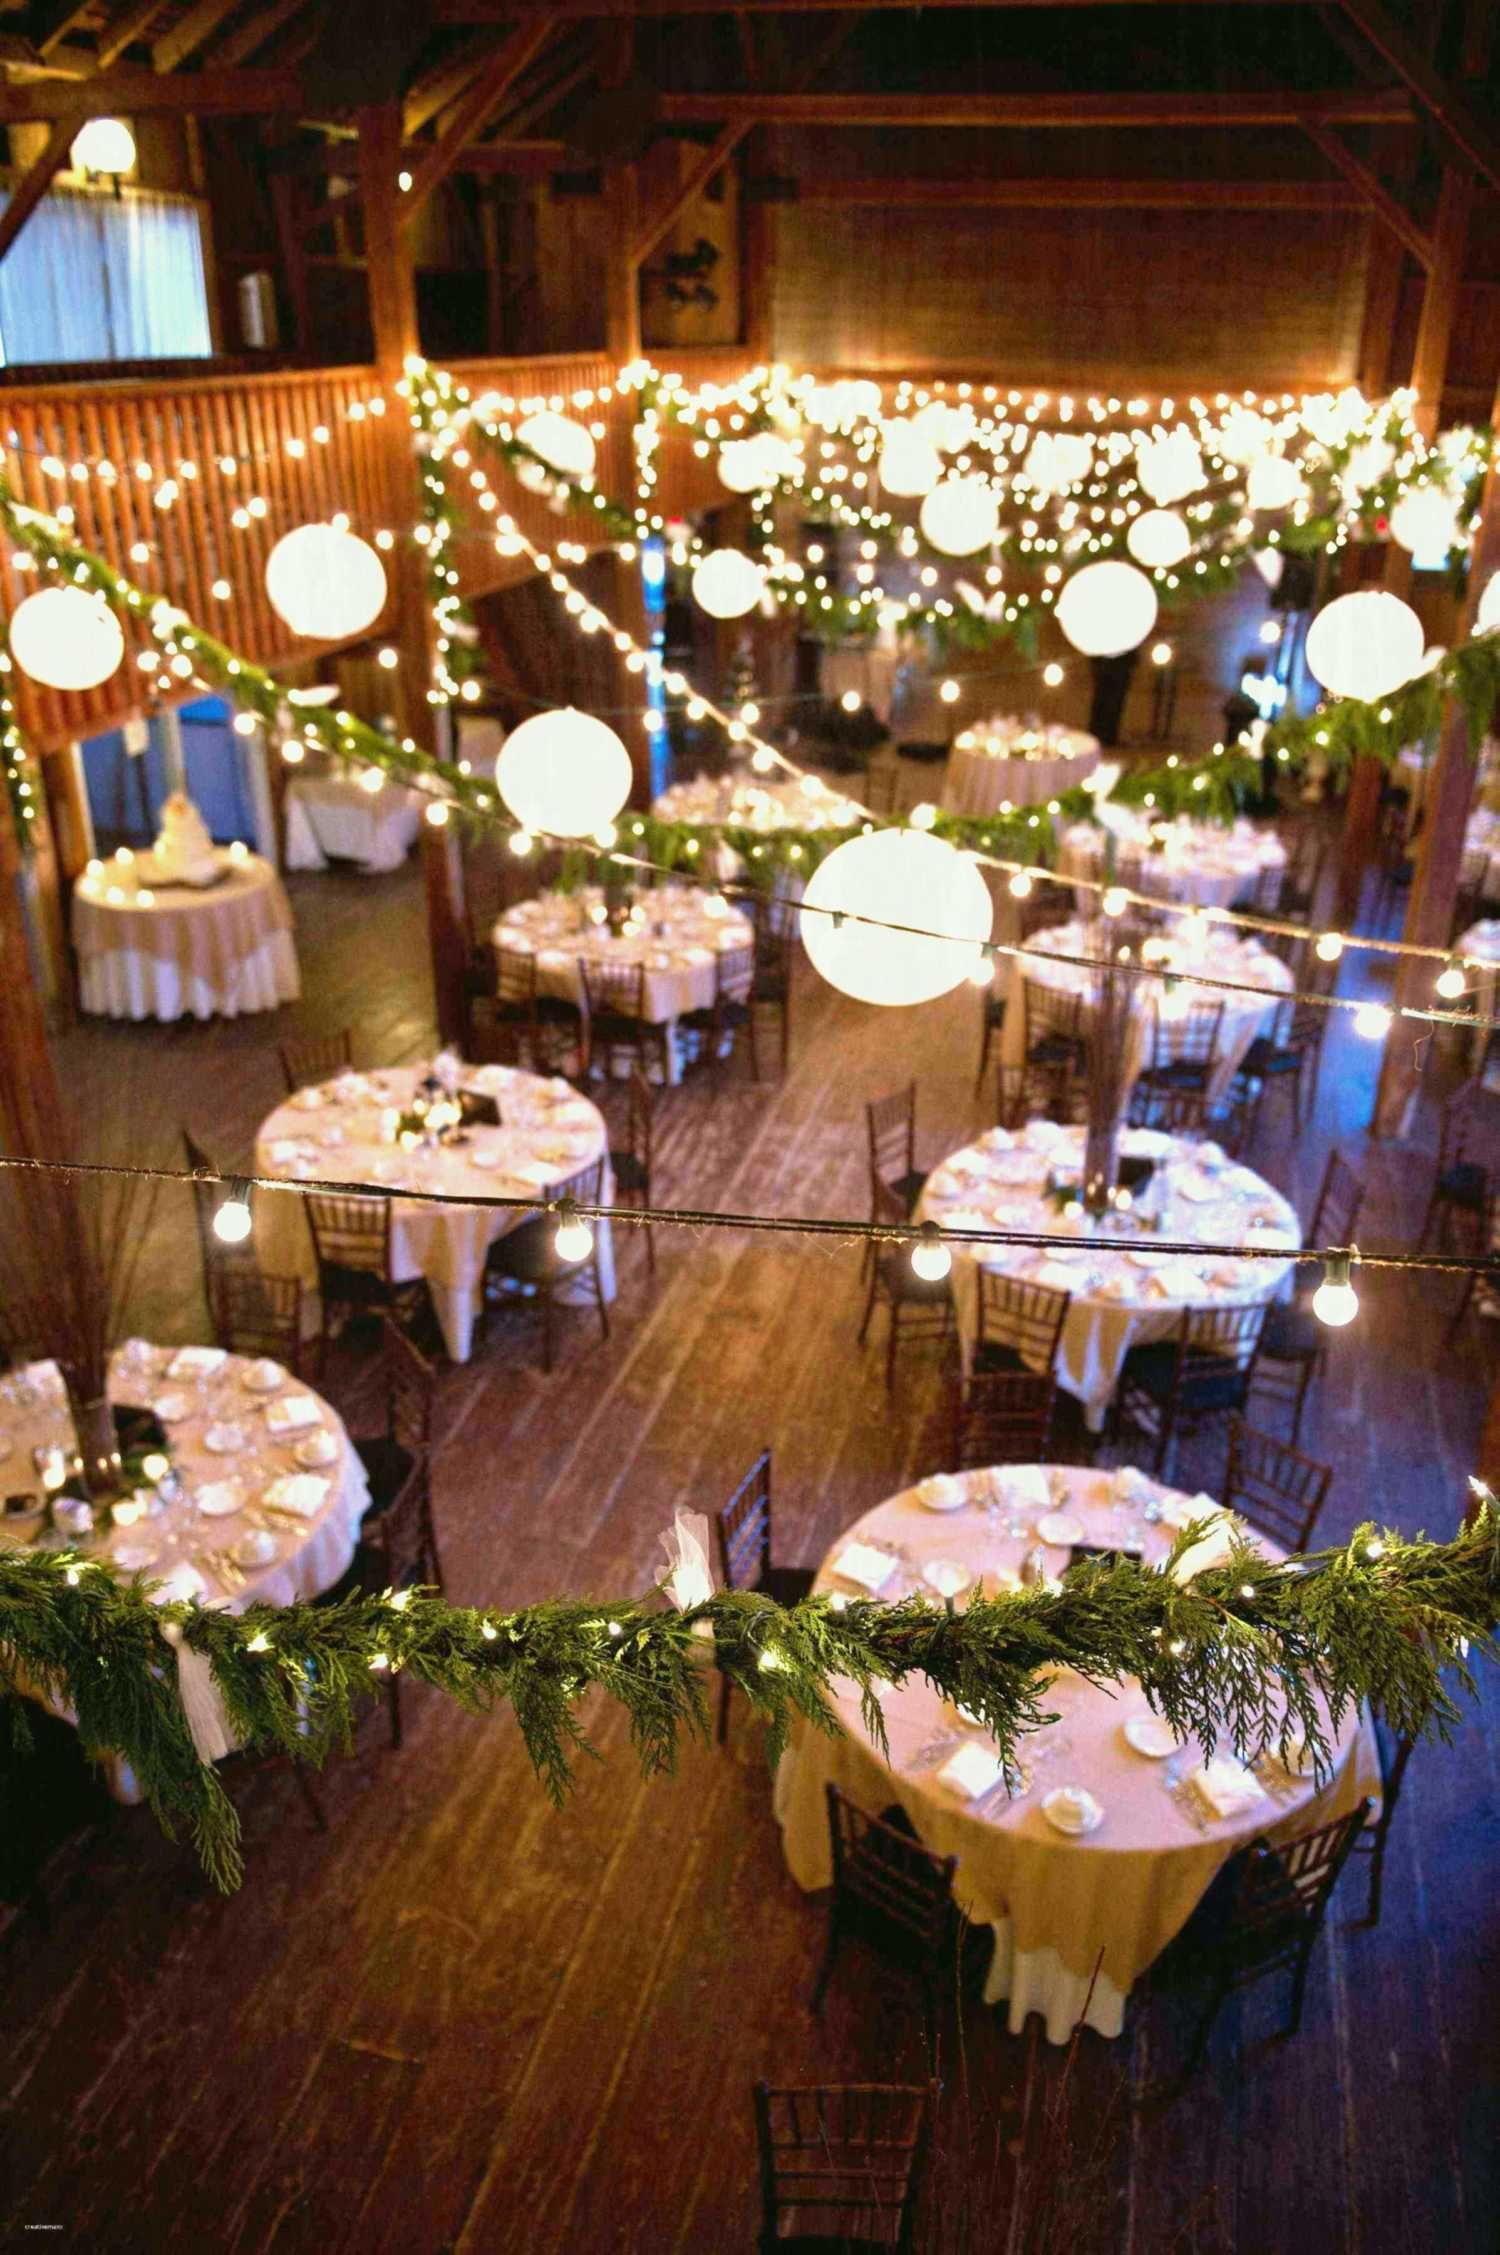 Wedding Decorations Rentals Near Me Red Wedding Decor Rentals Wedding Decoration Barn Wedding Lighting Wedding Decorations Barn Wedding Decorations